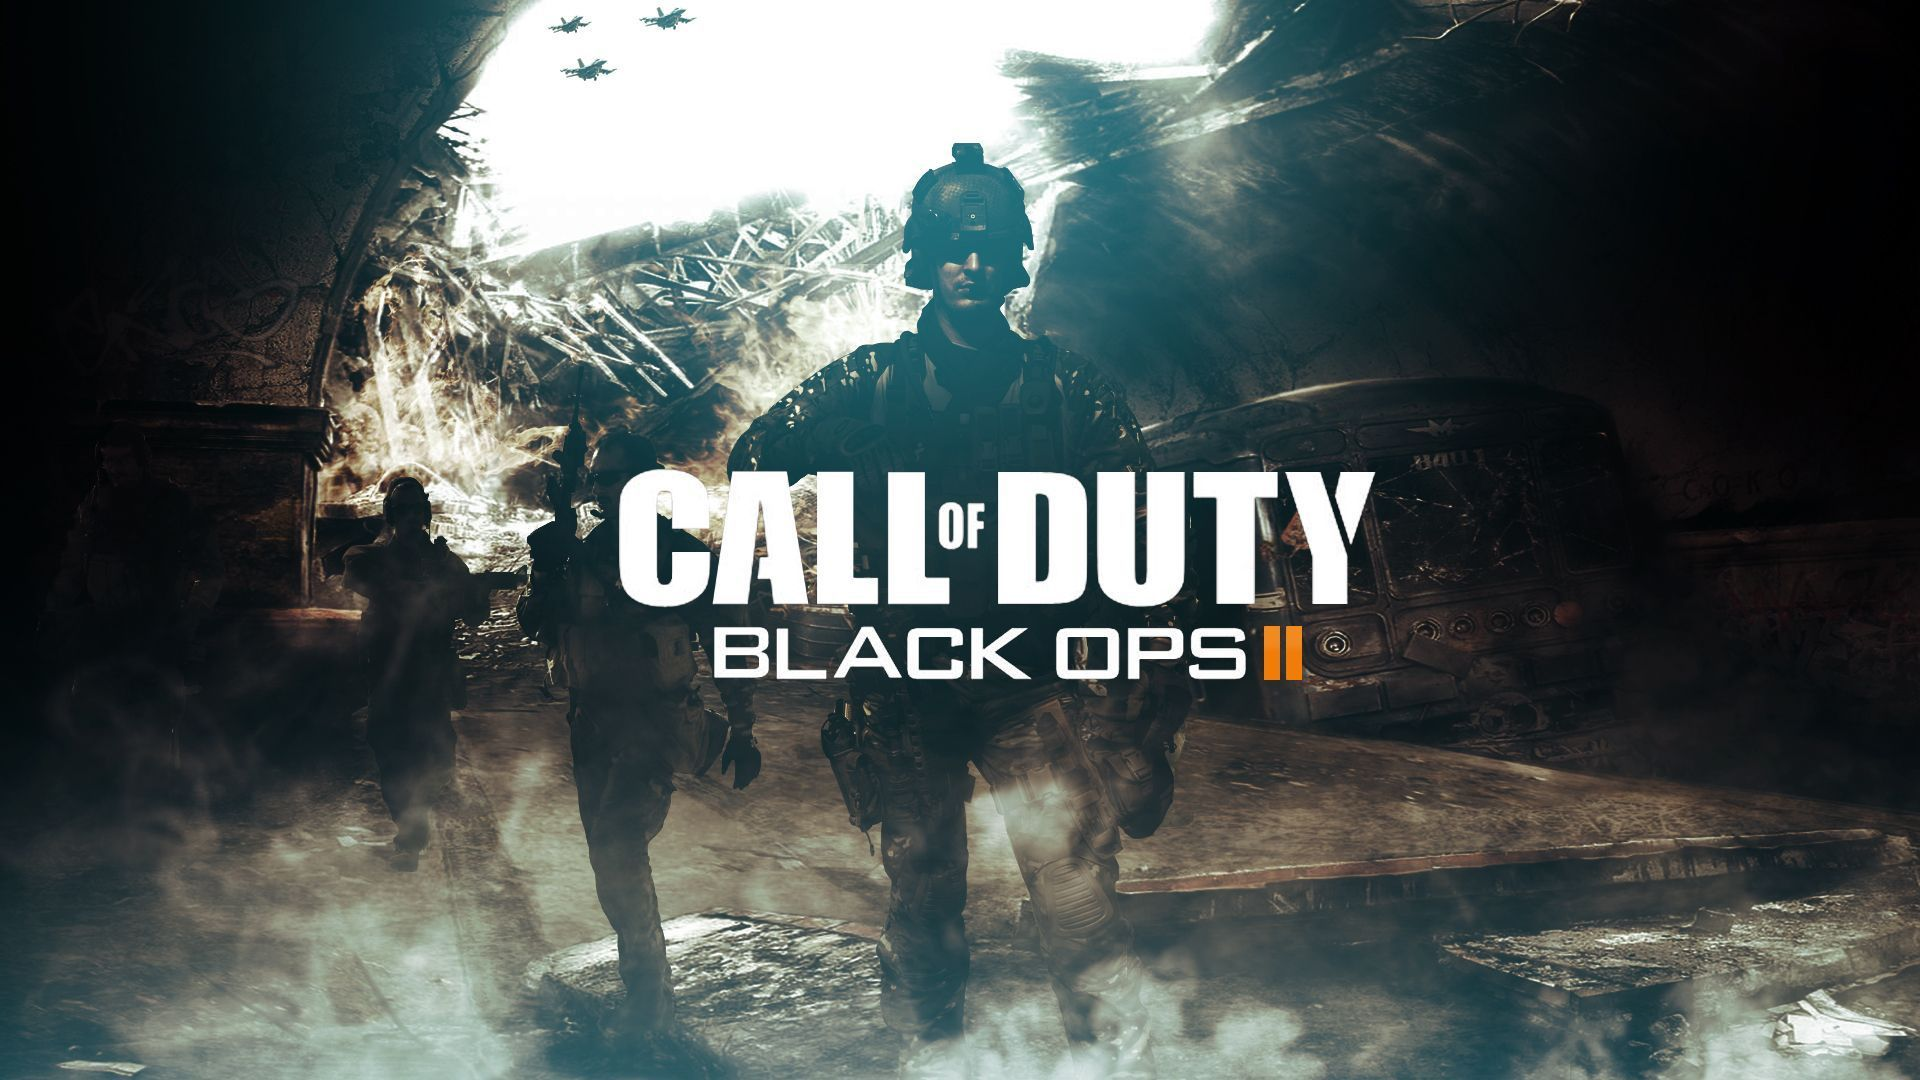 call of duty black ops wallpapers yayapz 1280×720 Black Ops